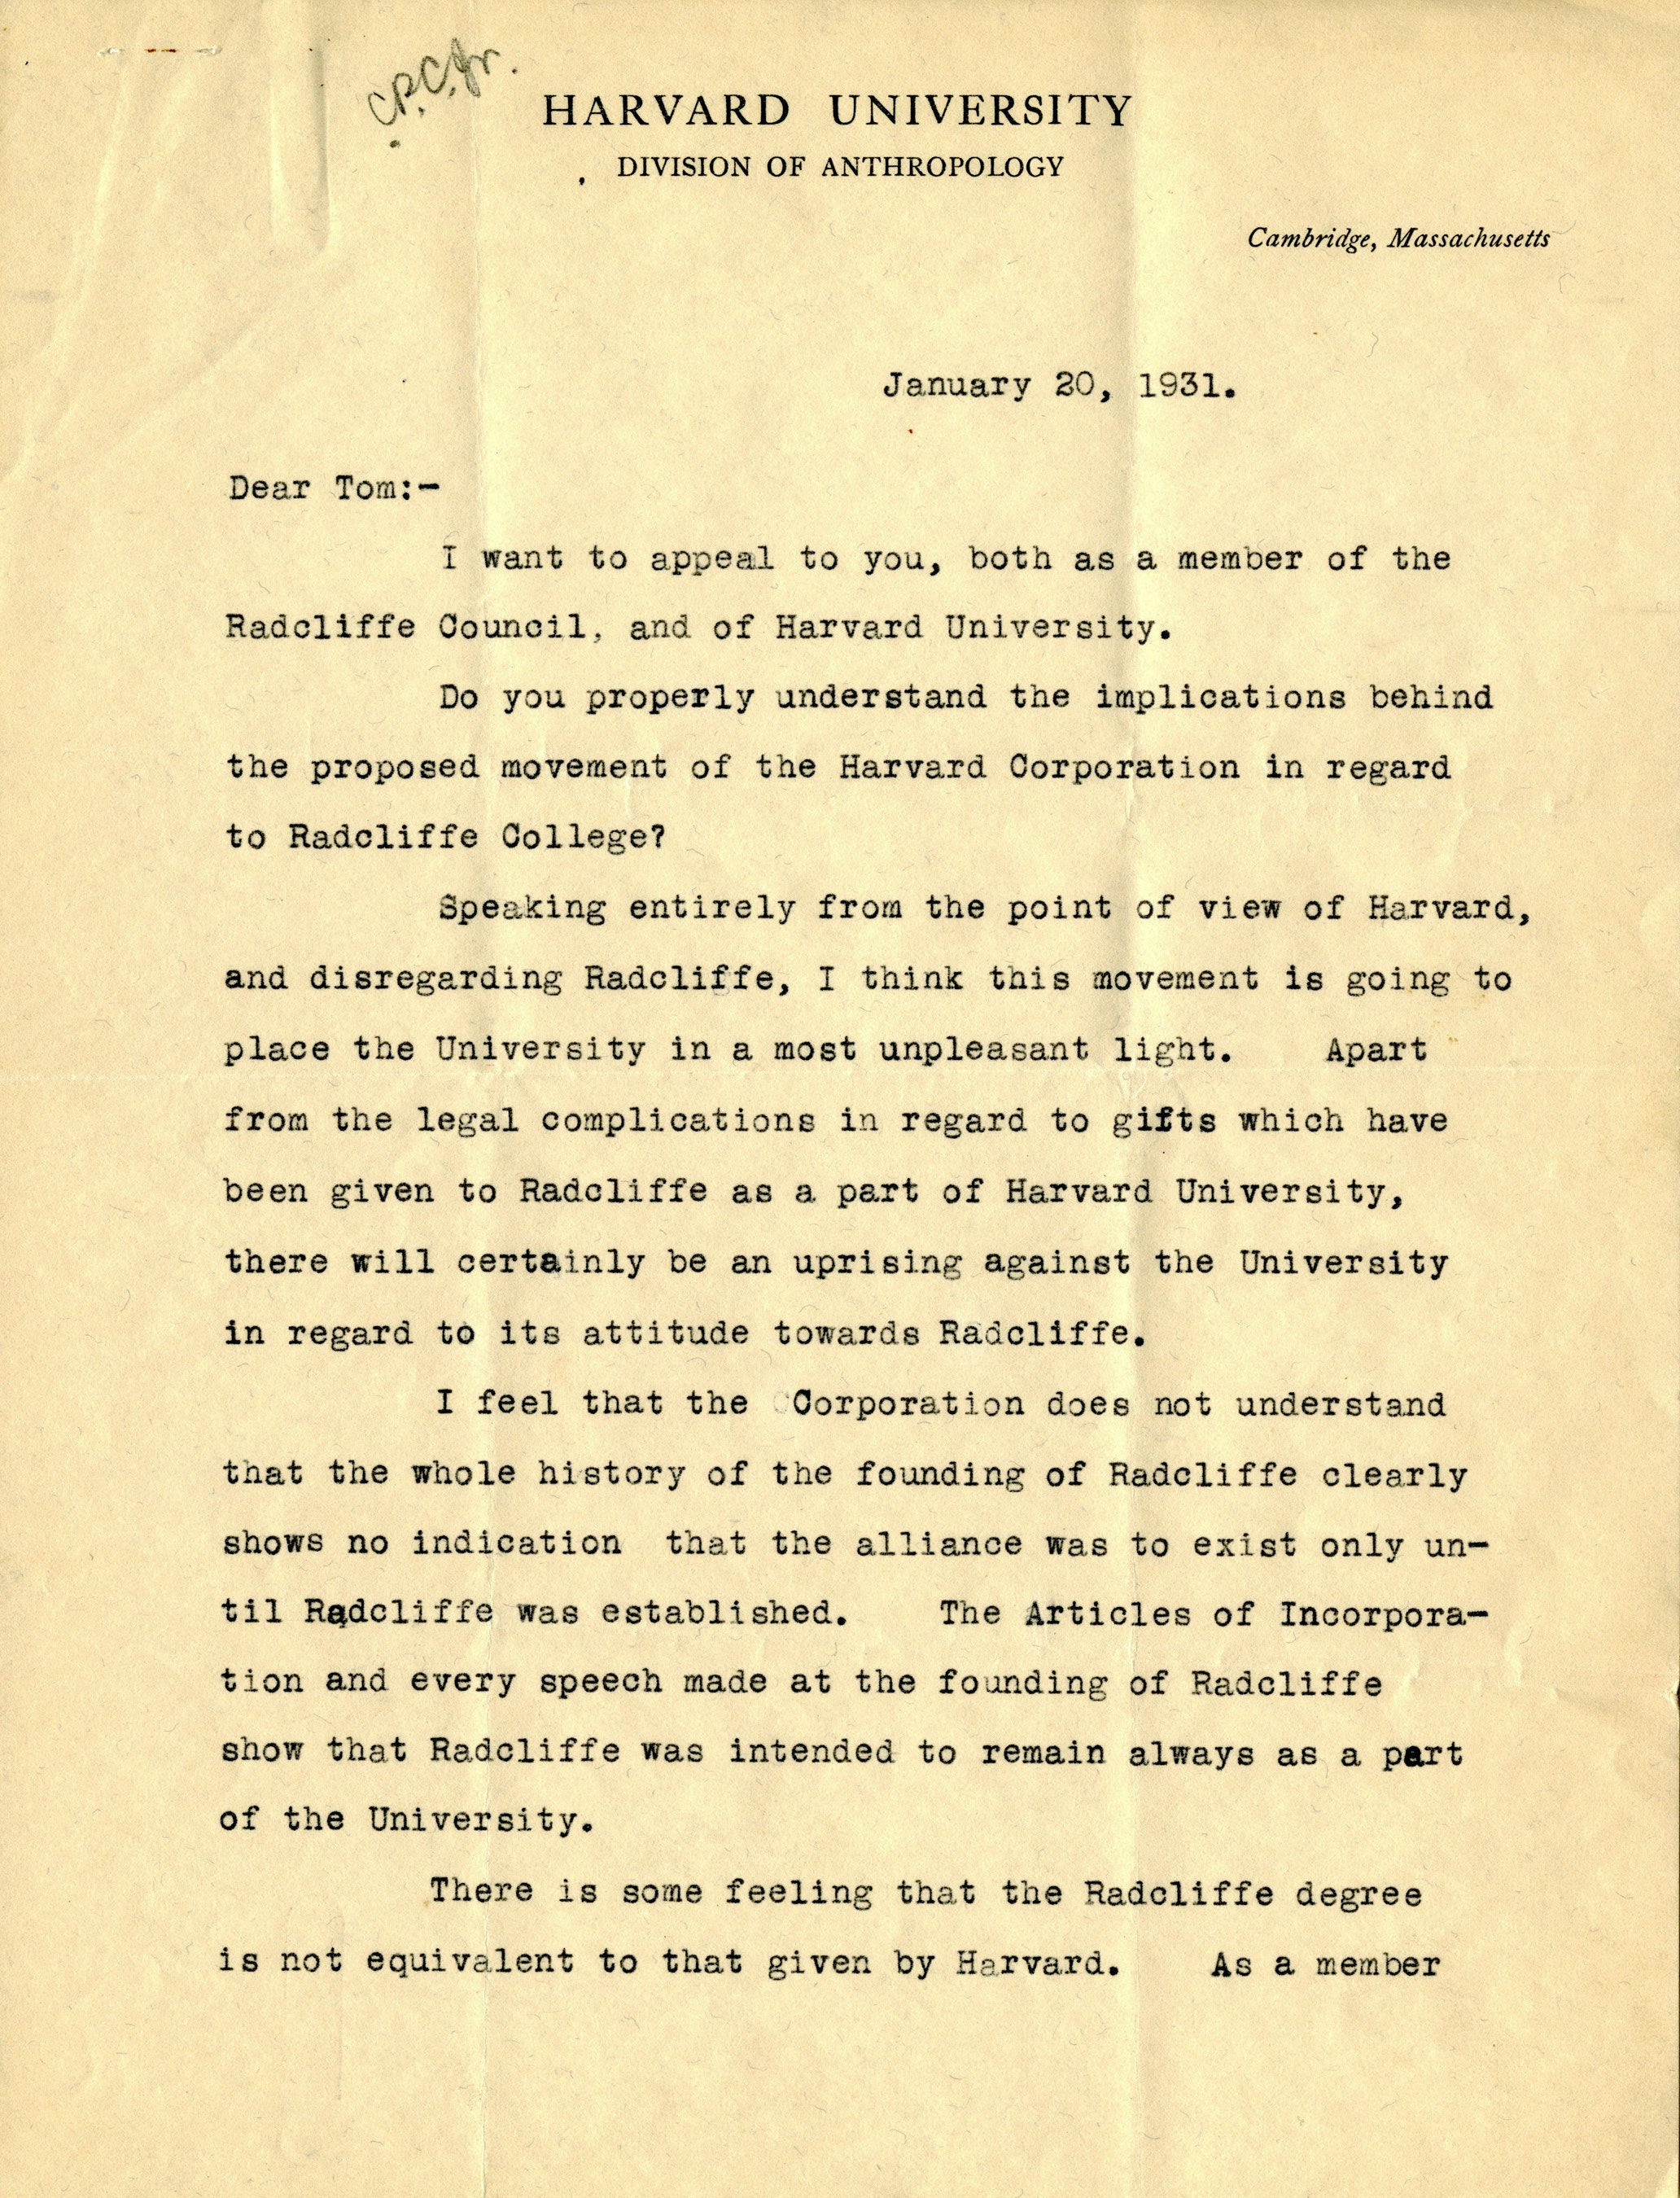 Letter from Dr. Alfred M. Tozzer